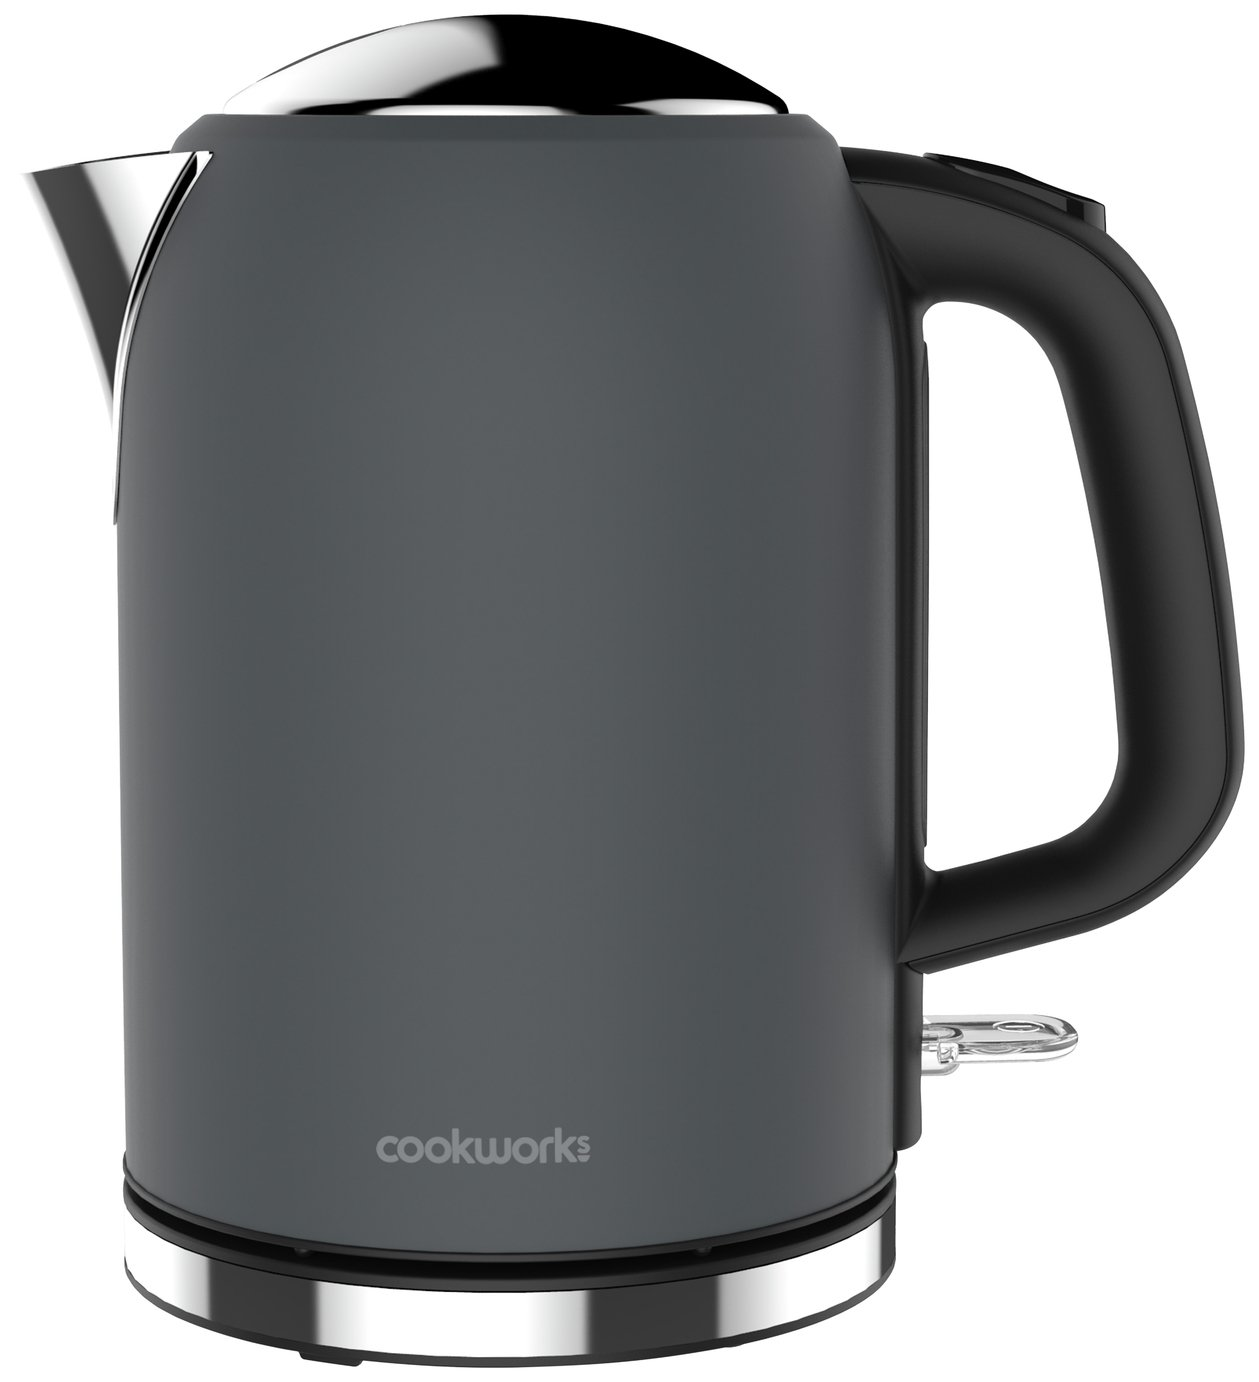 Cookworks Bullet Kettle - Grey